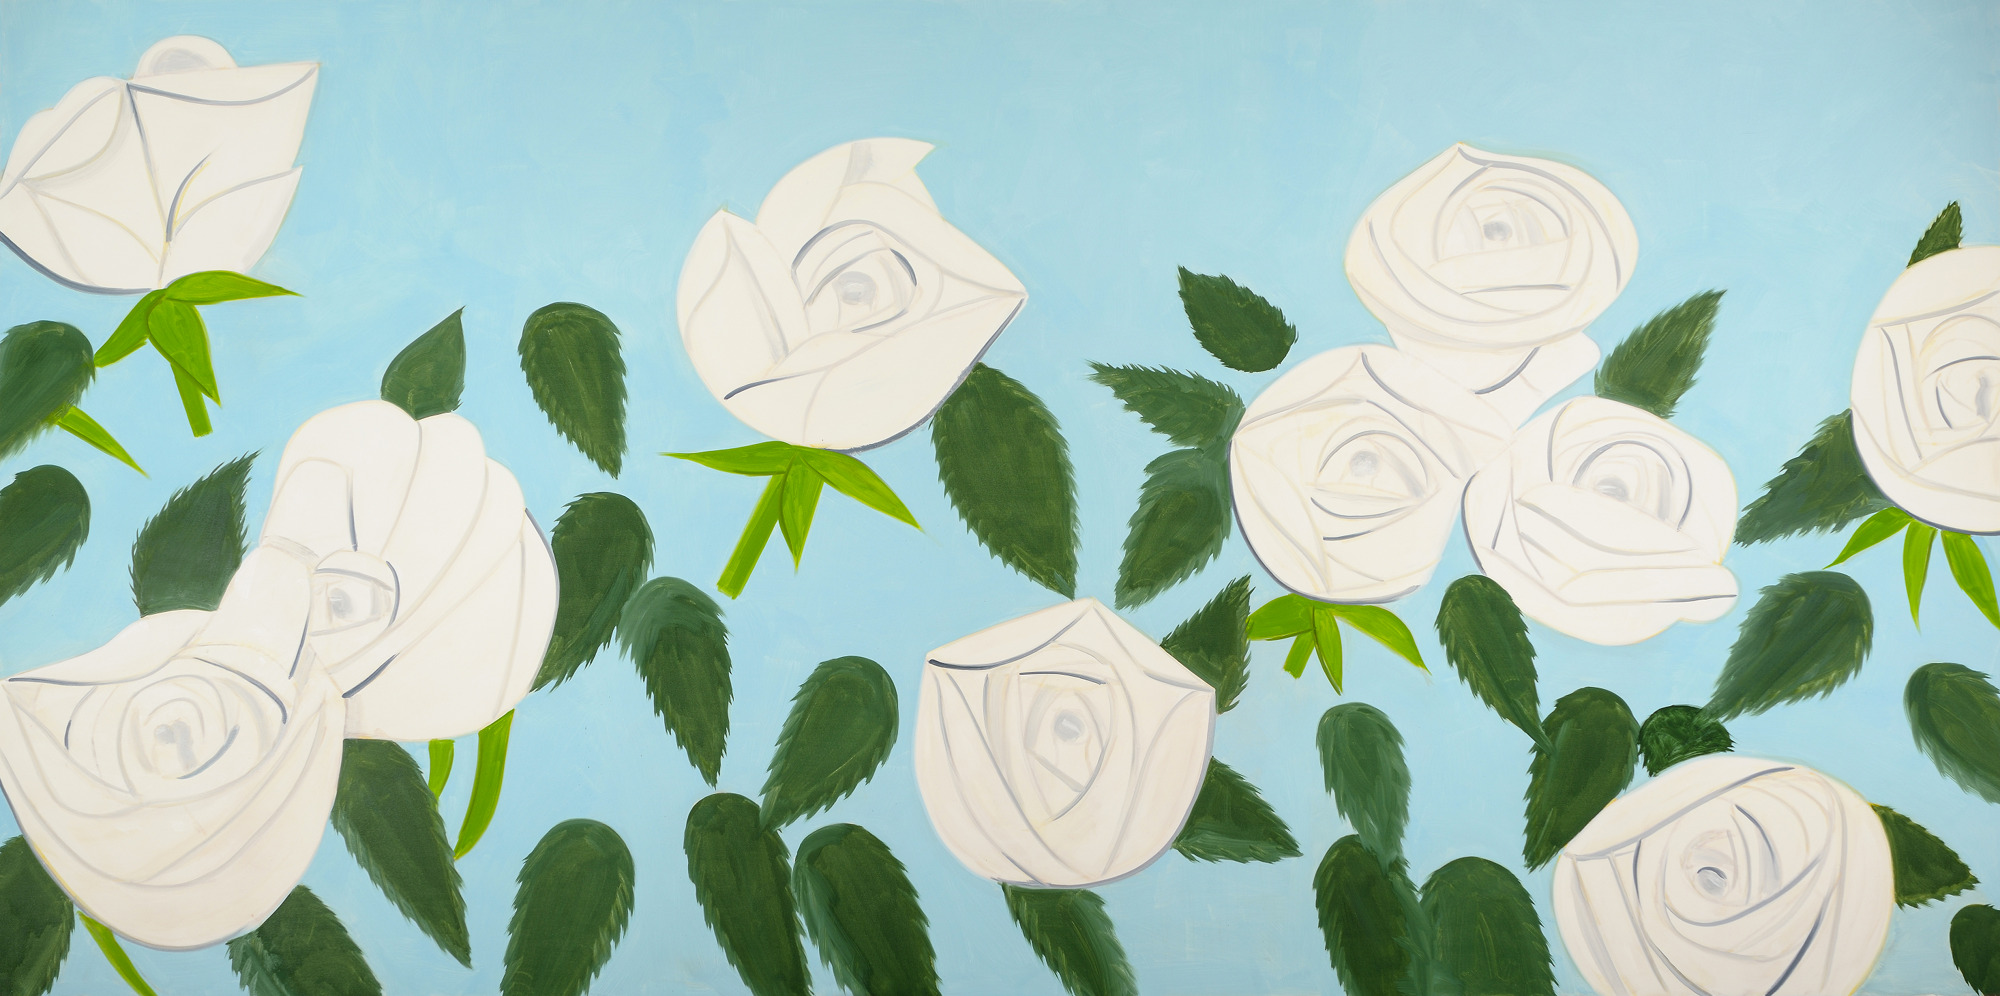 Roses blanches 9, huile sur lin